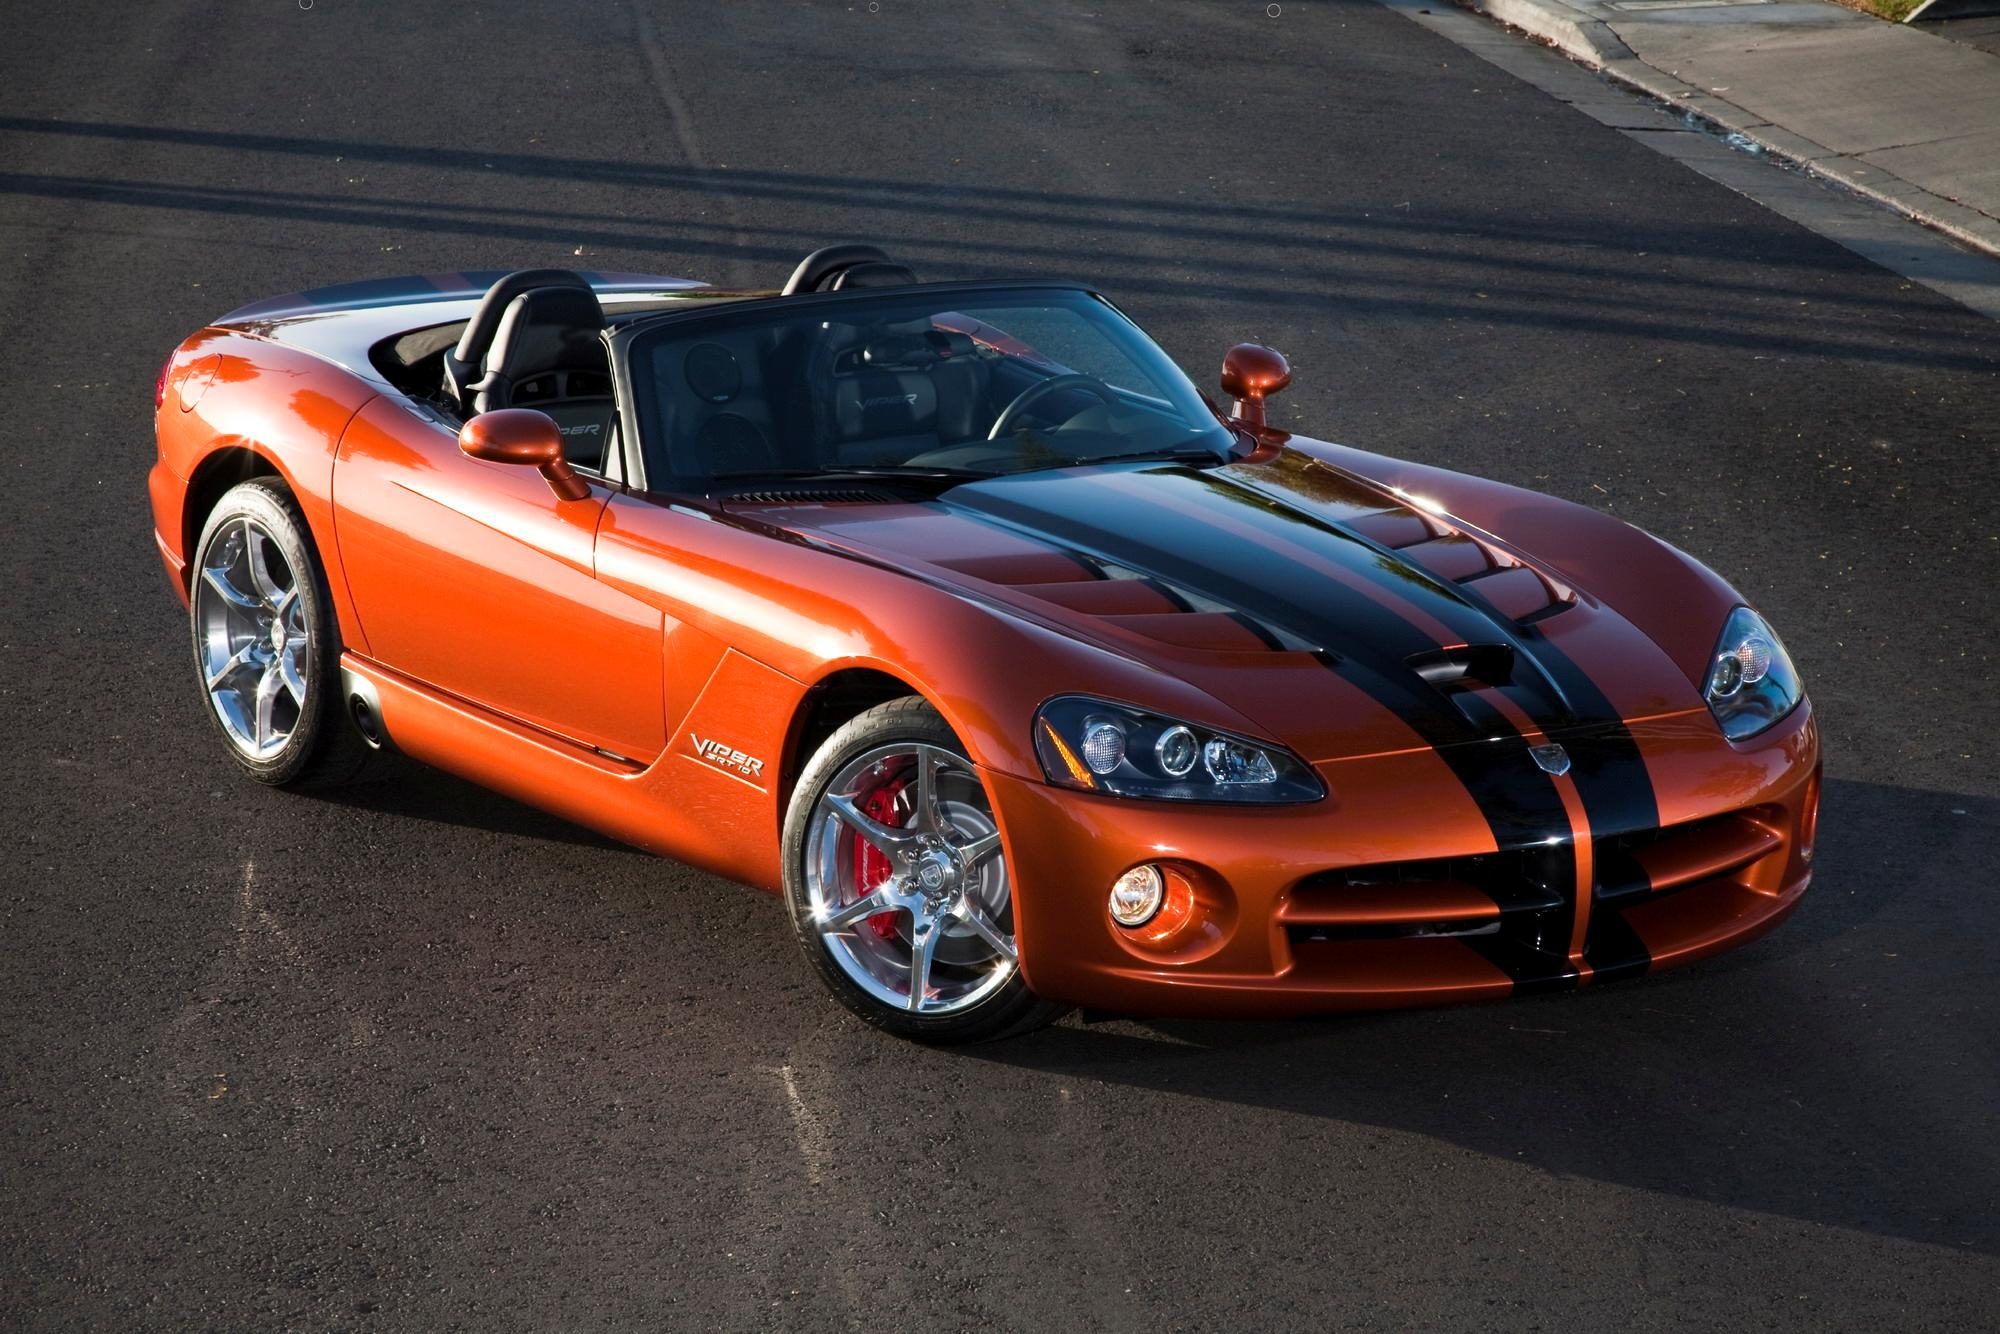 2010 Dodge Viper SRT10 | Top Speed